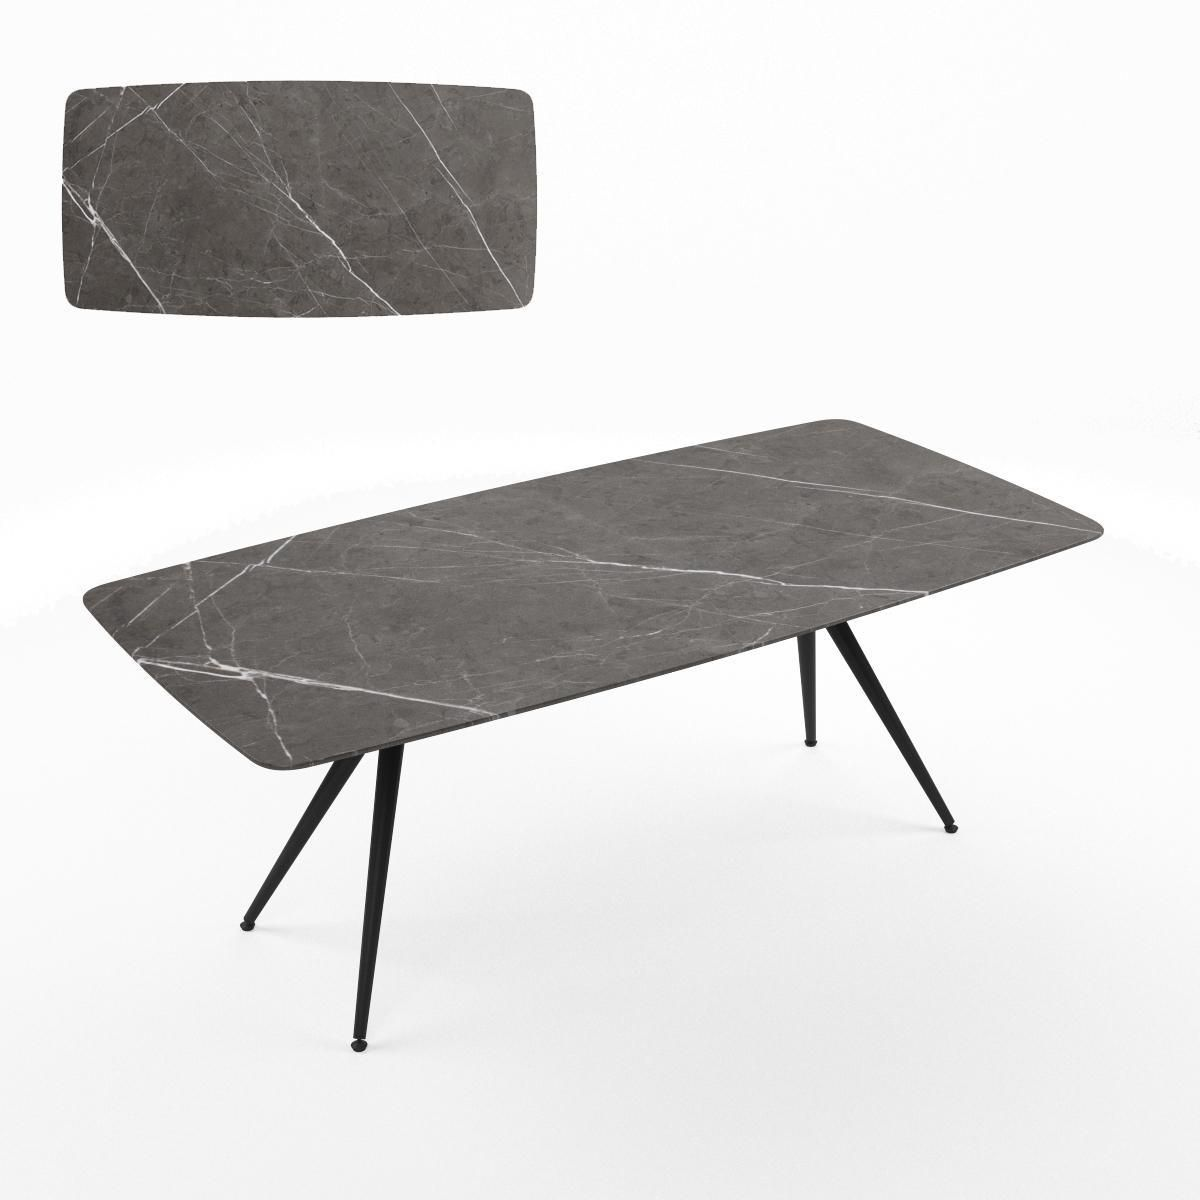 MILAN table. Table top-ceramic plate LAMINAM® glossy Pietra Grey Lucidato. Base: aluminum, steel-Black finish.